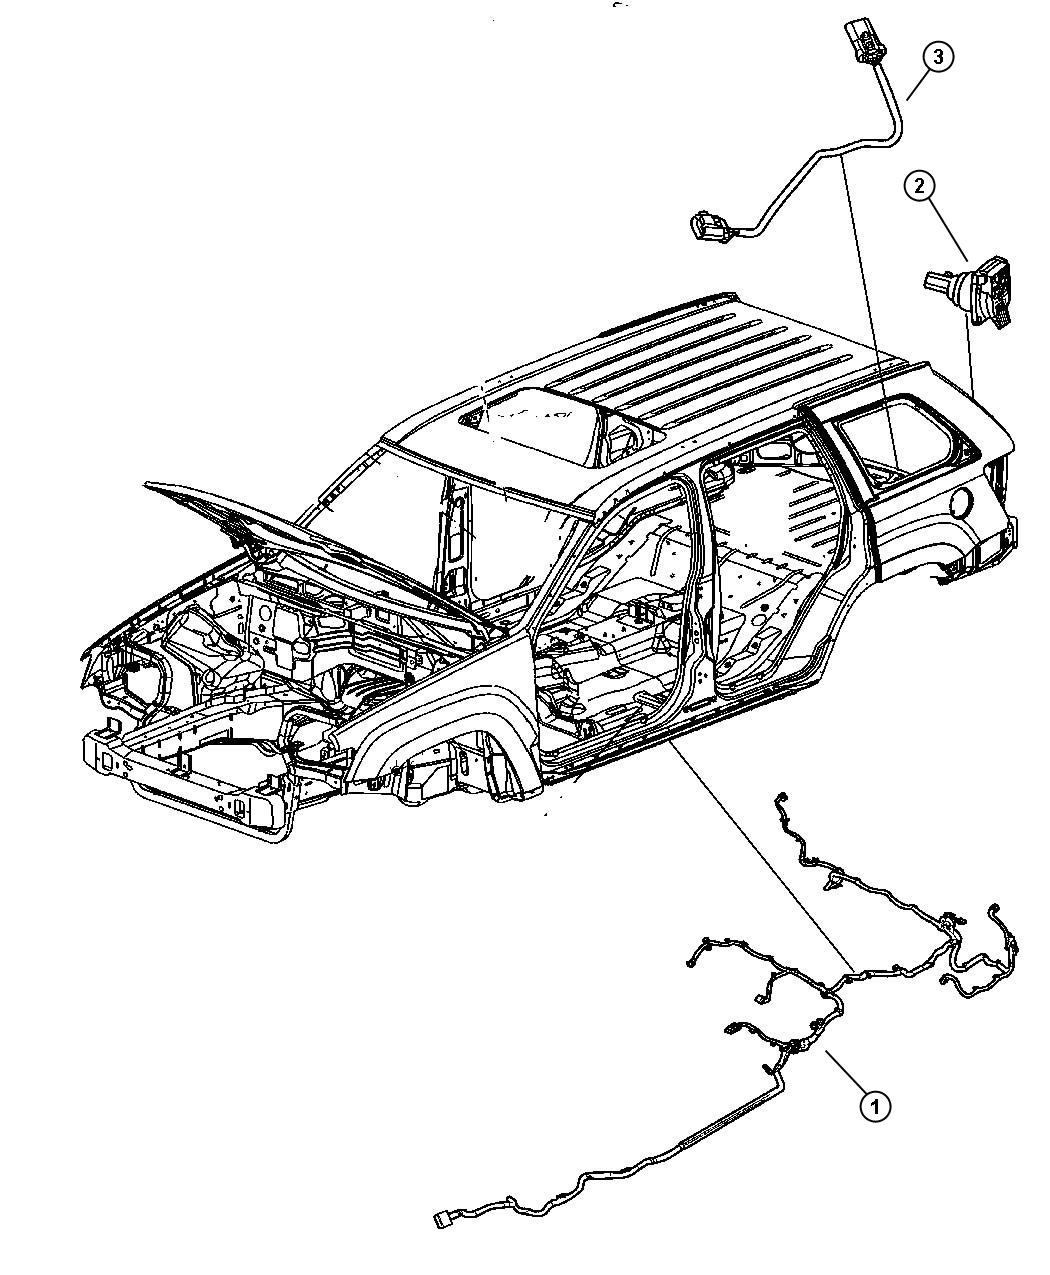 2008 Jeep Grand Cherokee Wiring  Underbody  Xgm  Tow  Dhx